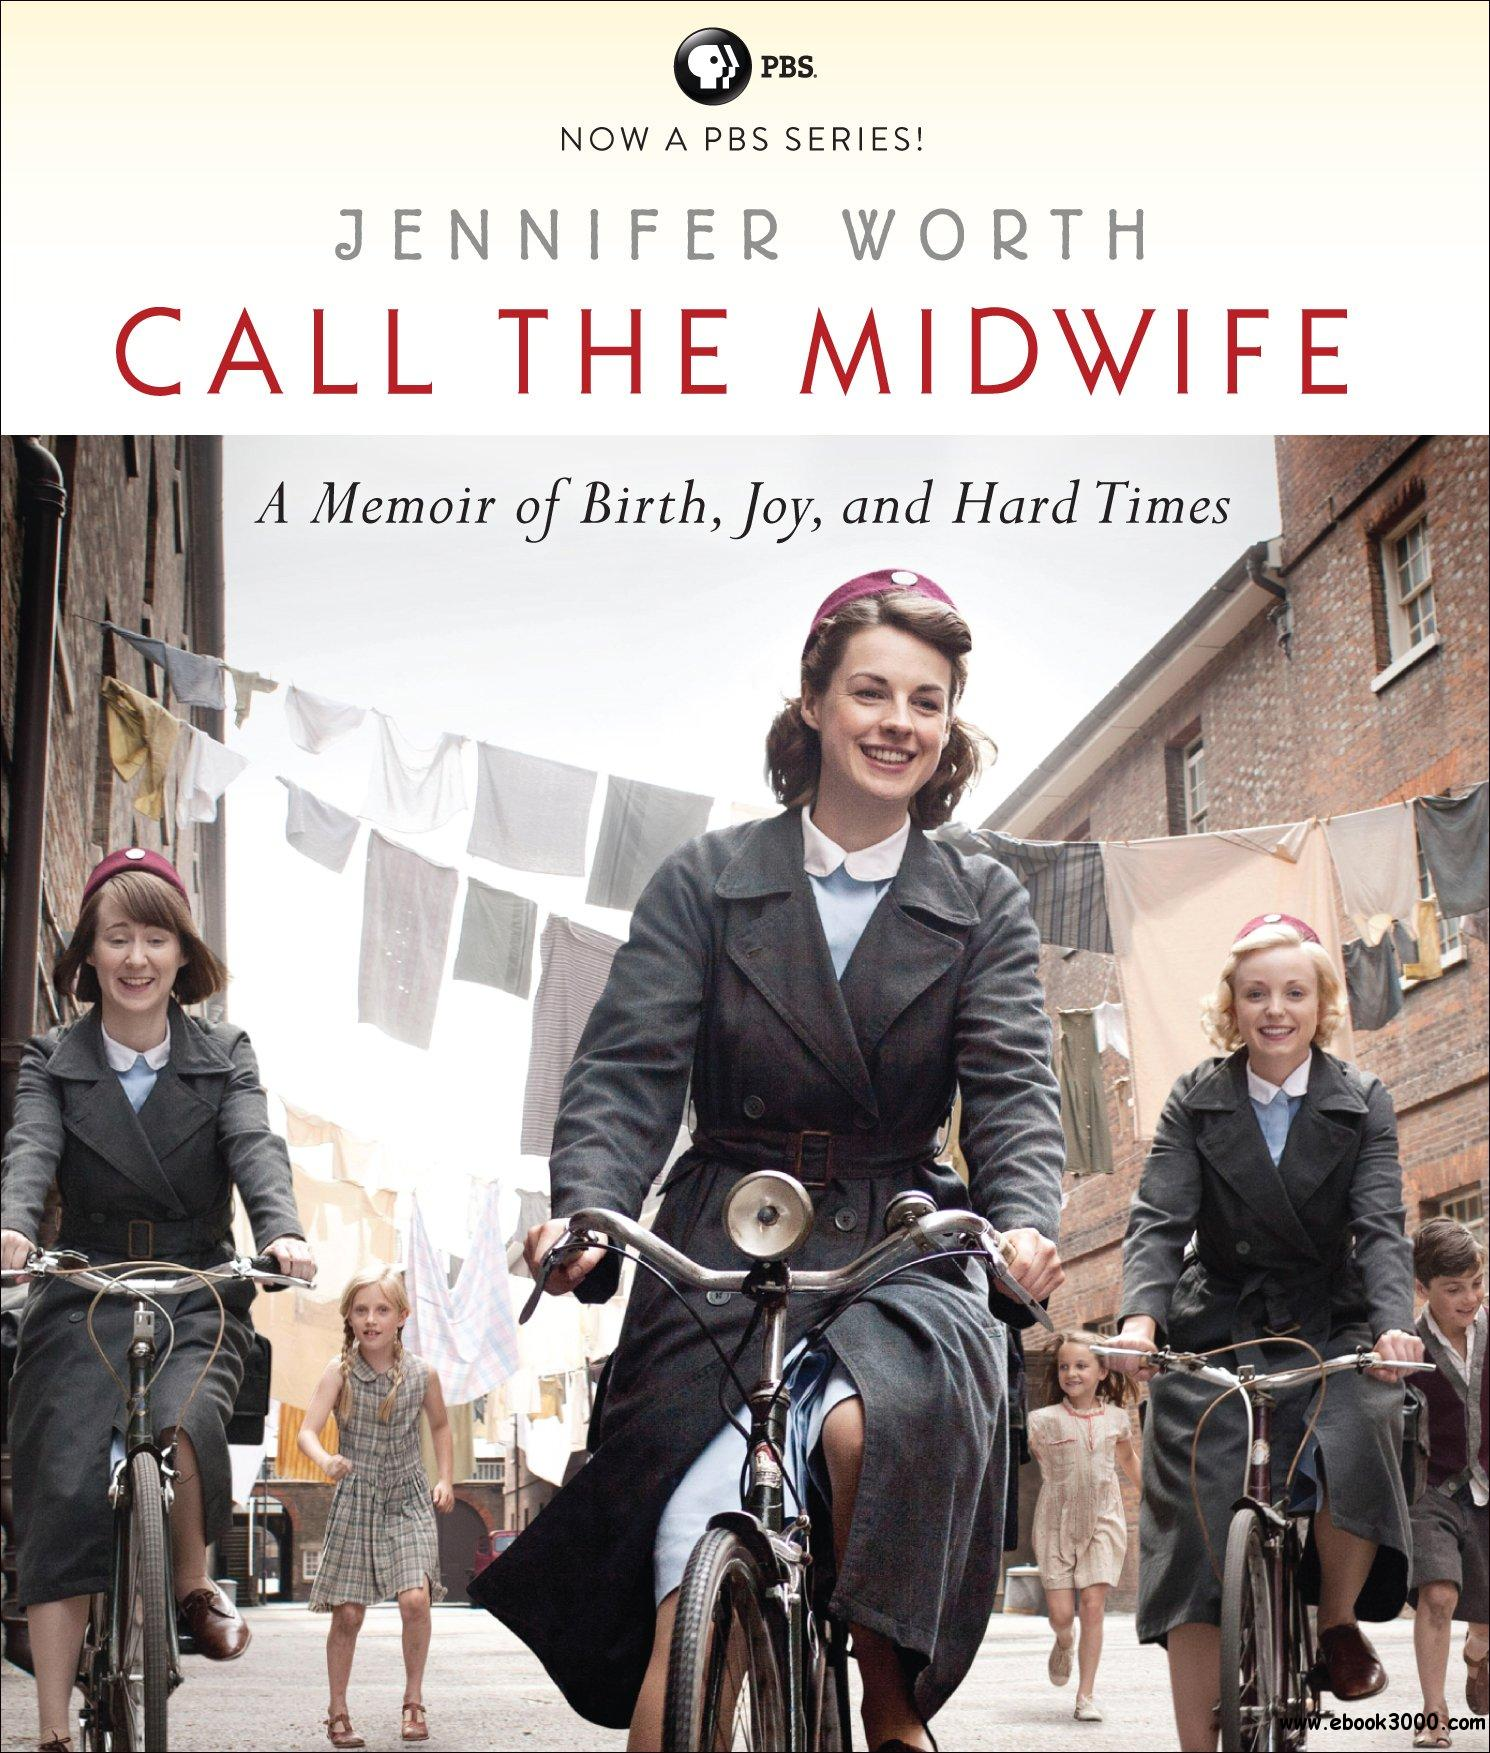 Call the Midwife: A Memoir of Birth, Joy, and Hard Times free download